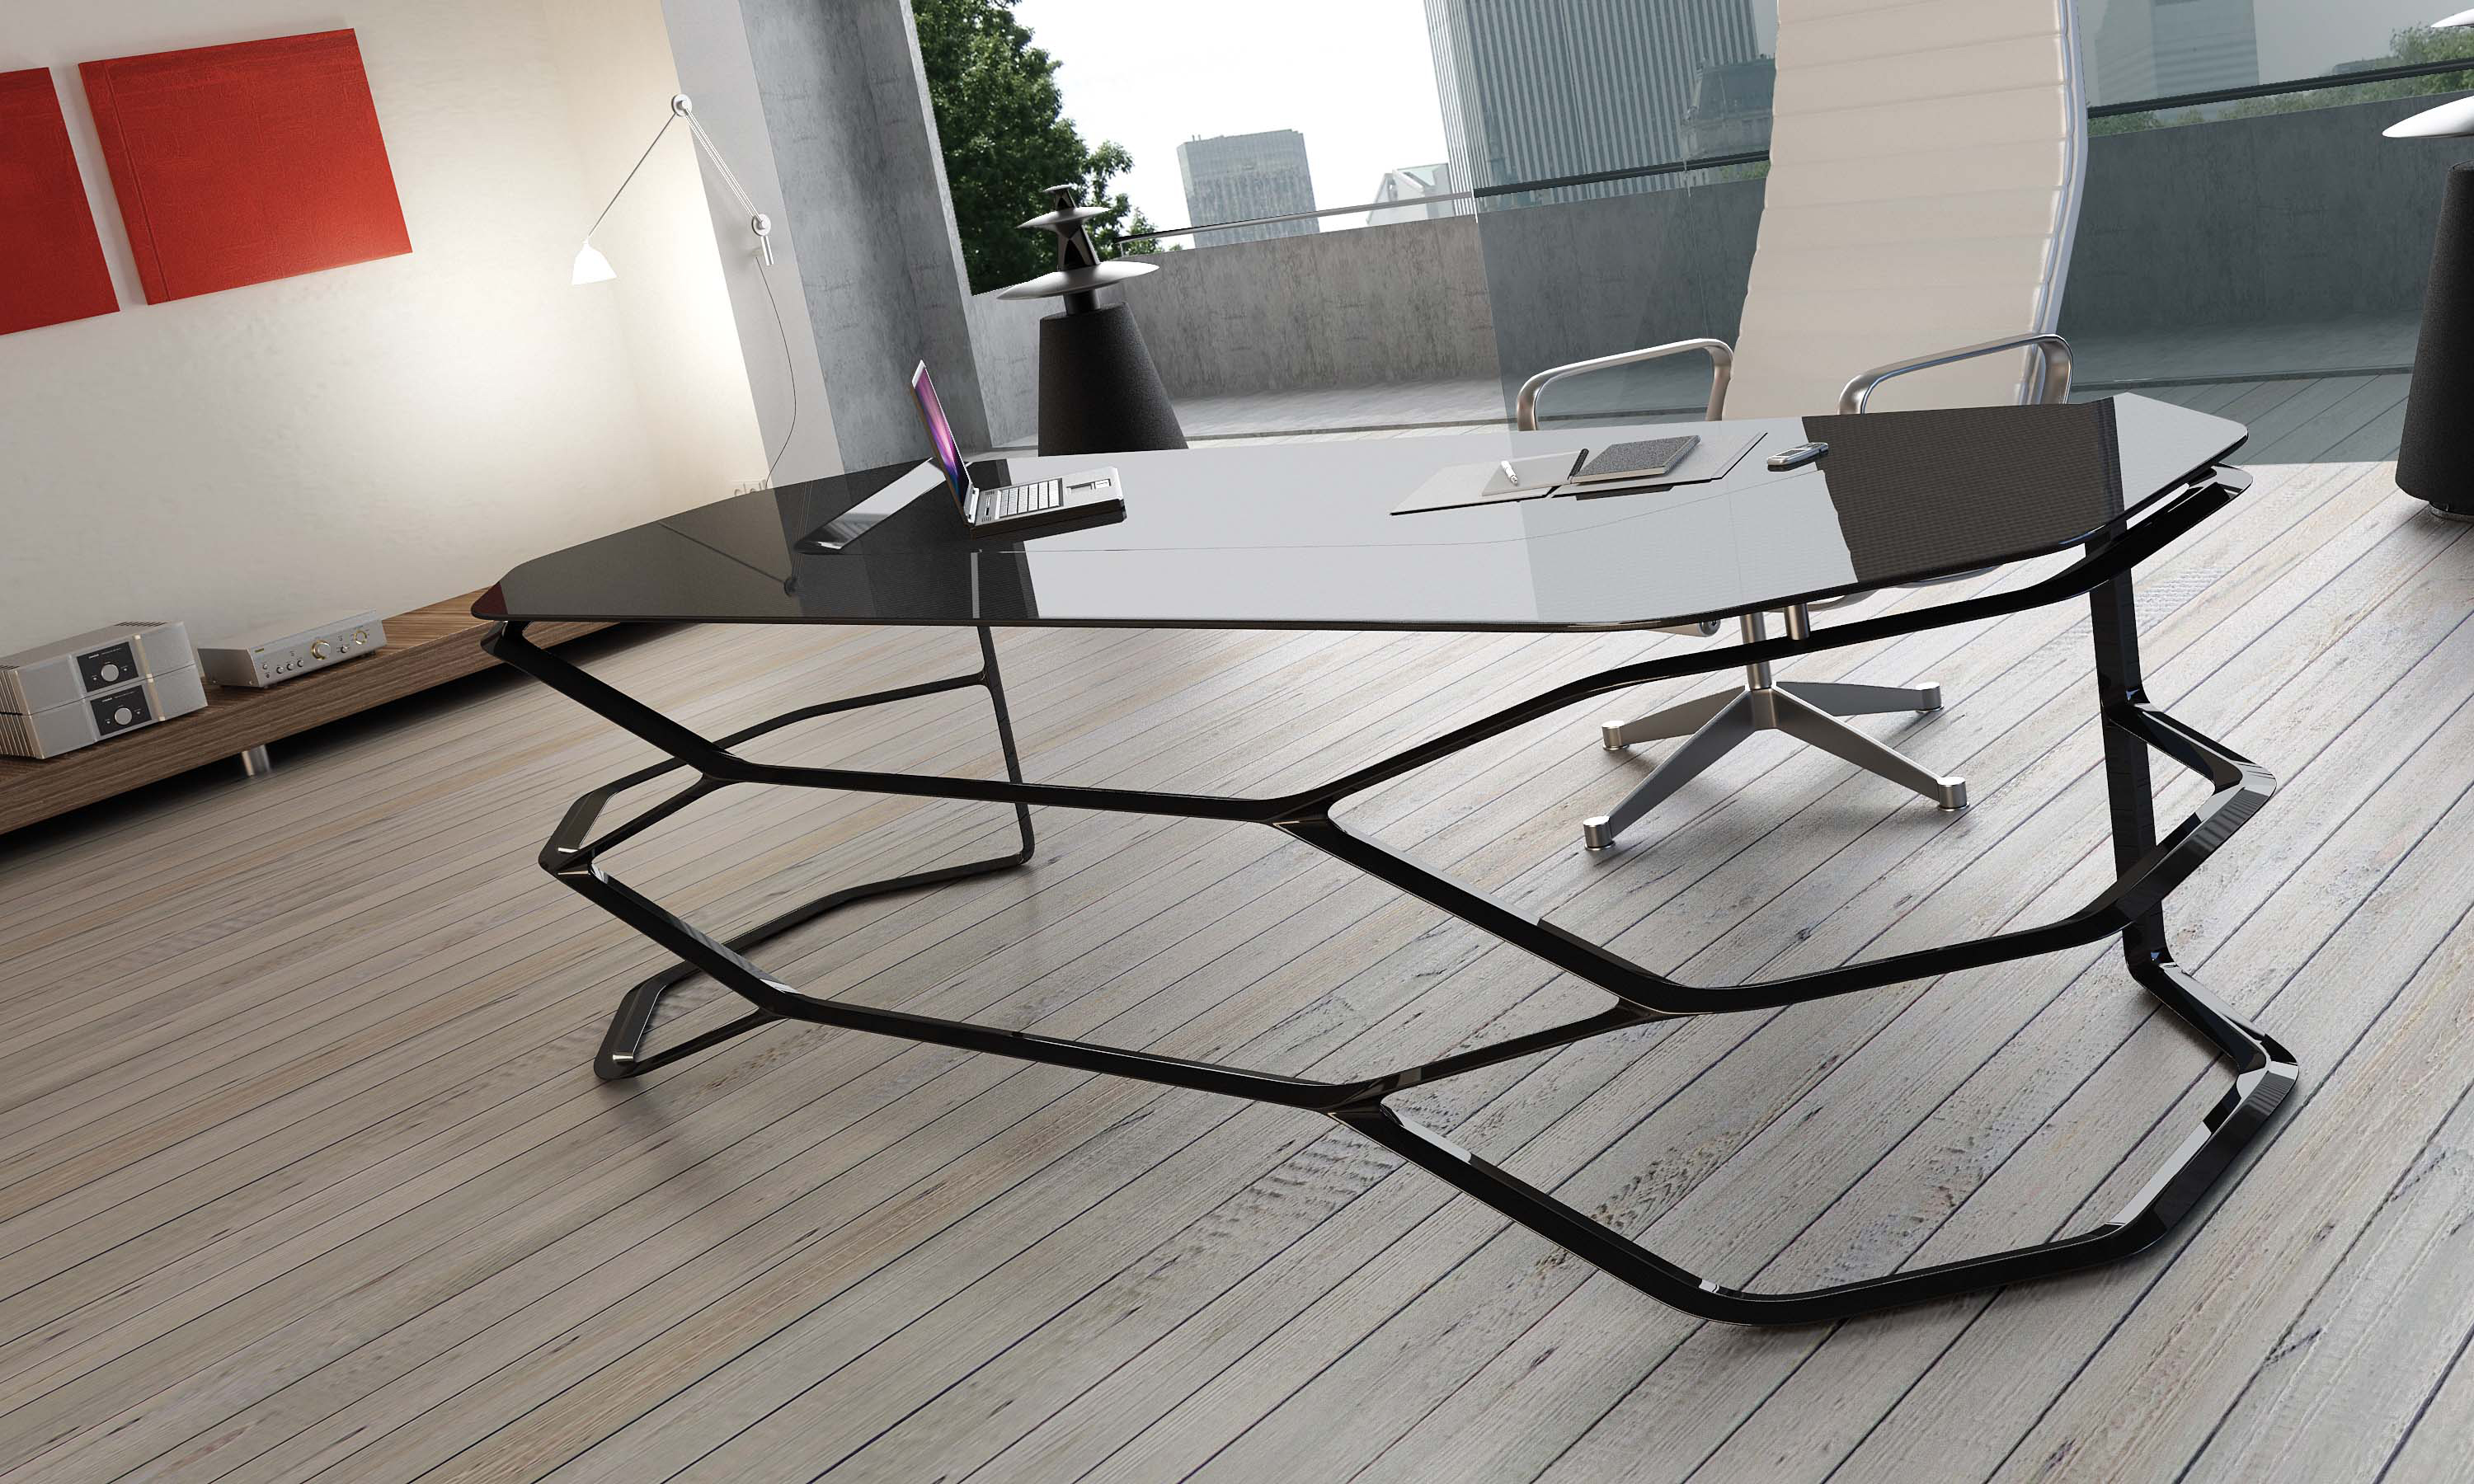 Hexagonal Base Stylish Desk